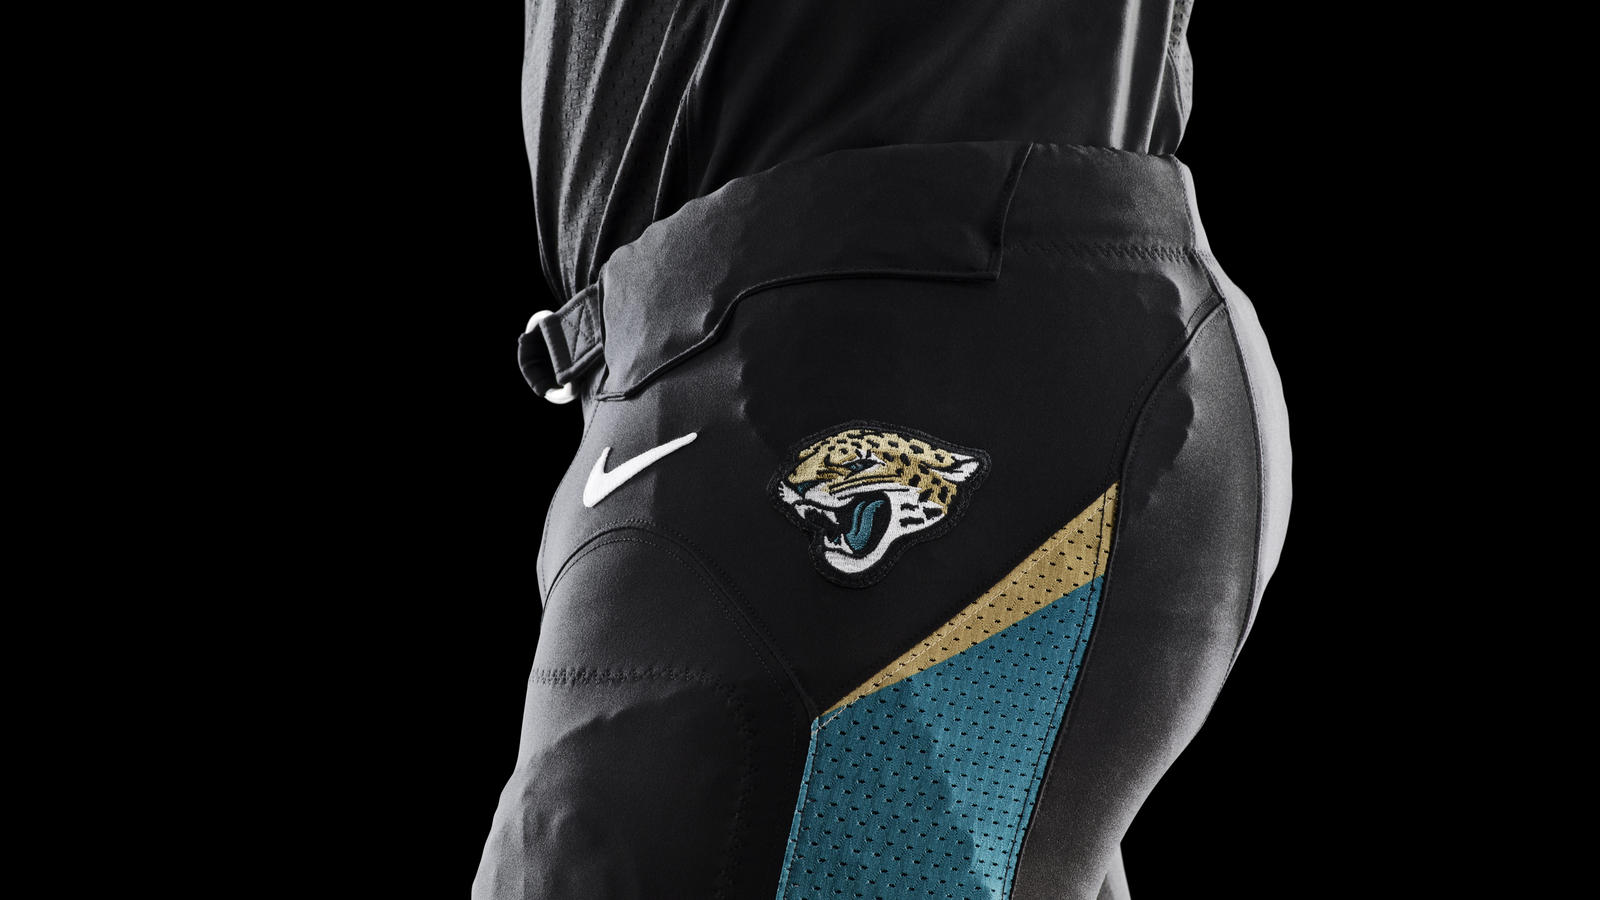 jaguars-nfl-nike-elite-51-uniform-zoned-mesh-ventilation